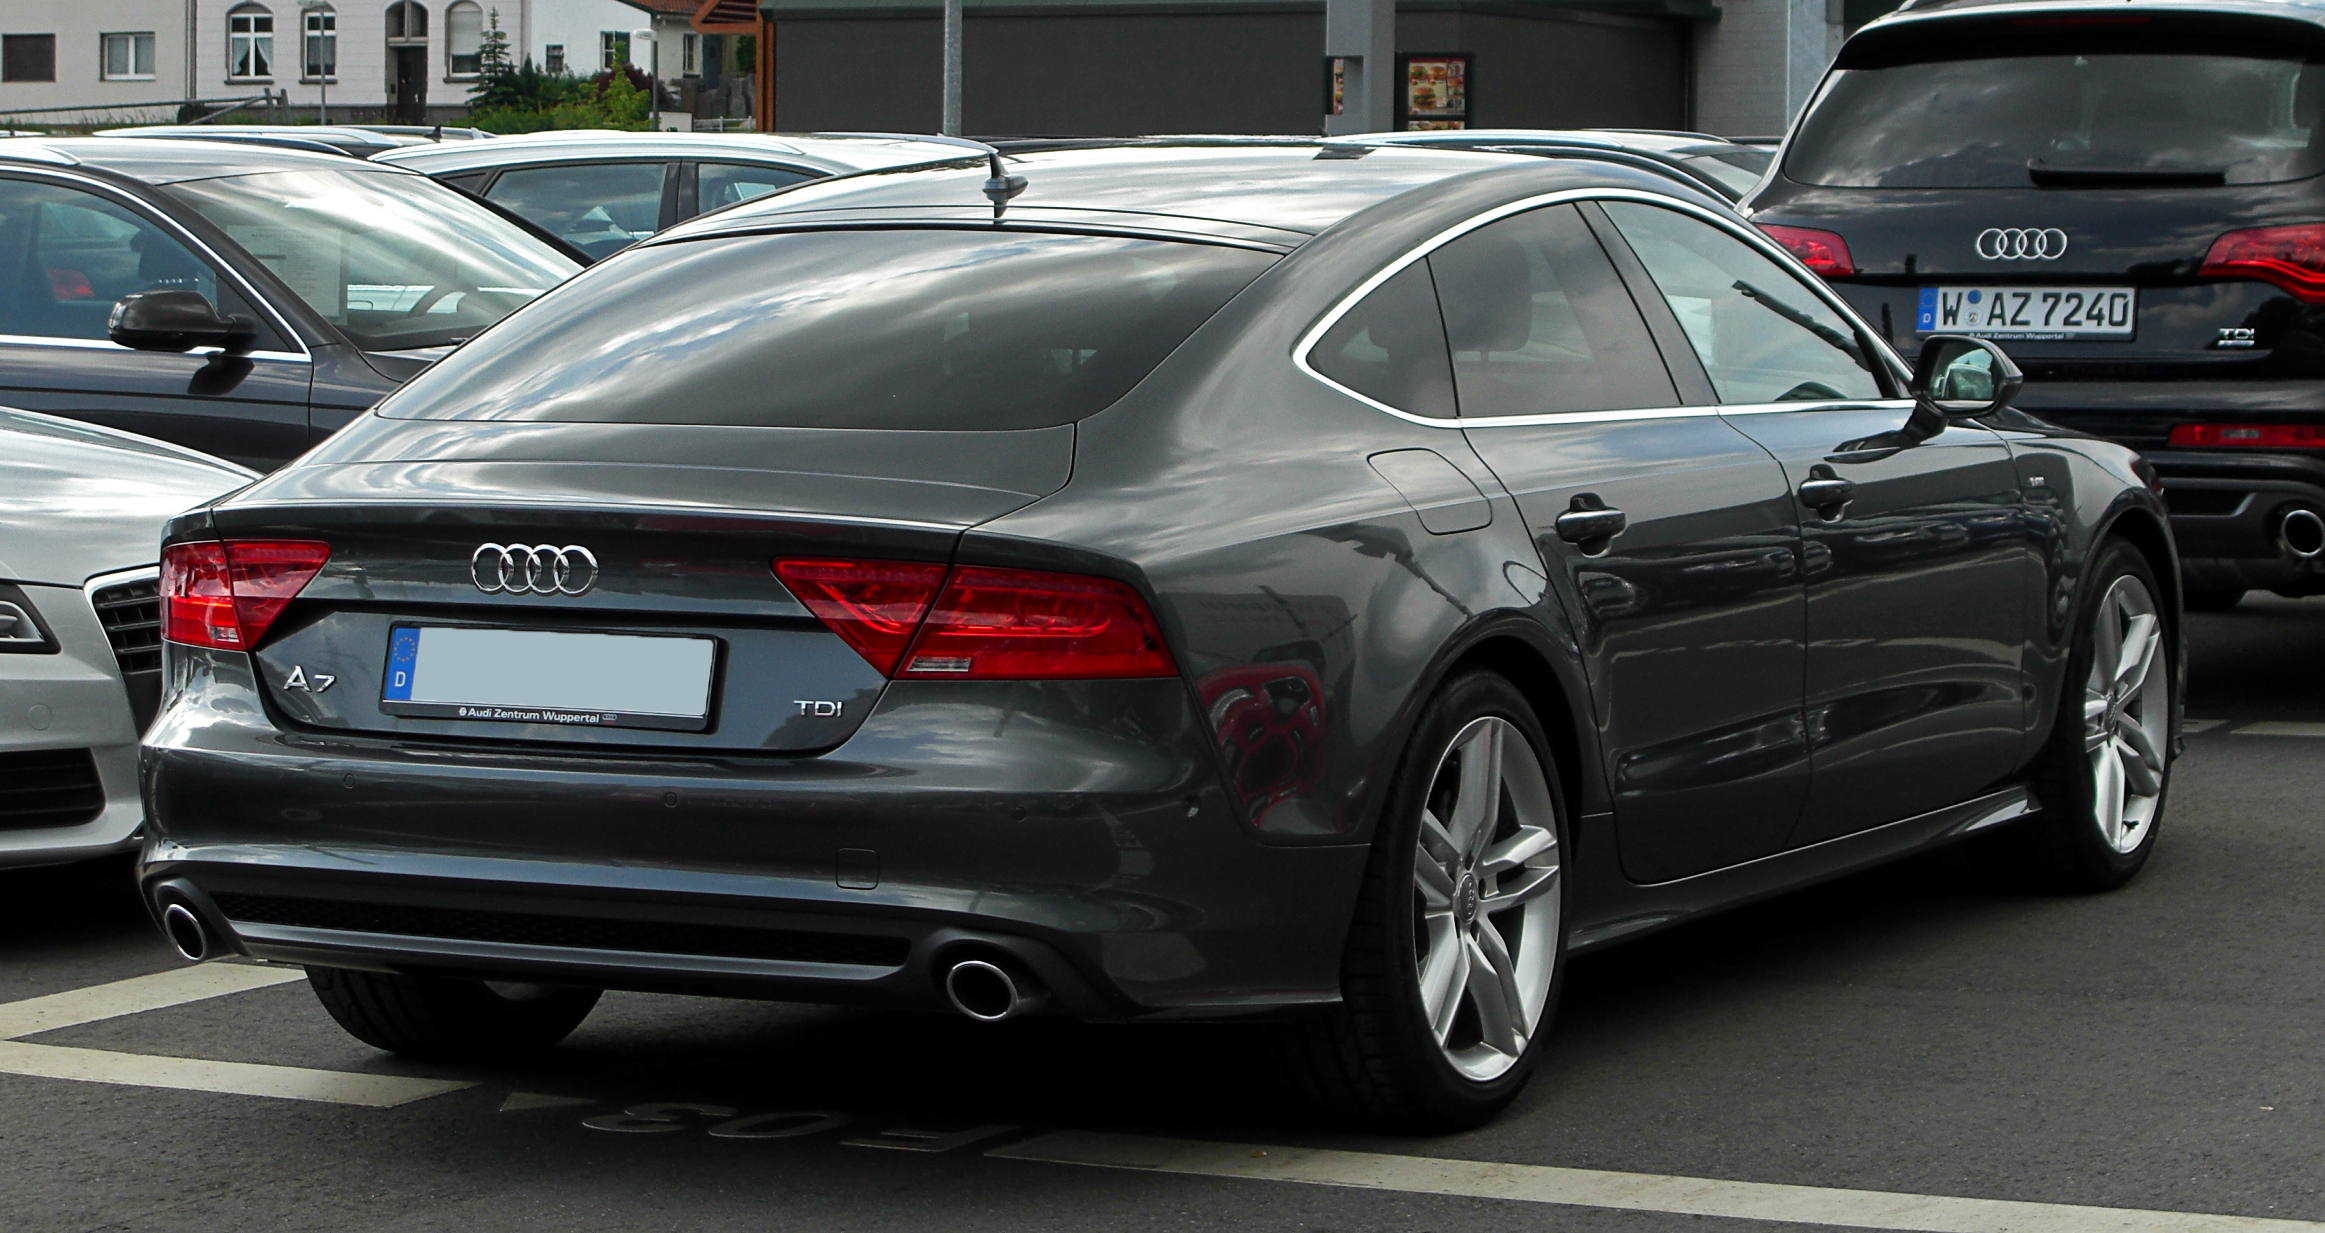 Pictures of audi s7 sportback (4g) 2012 #1